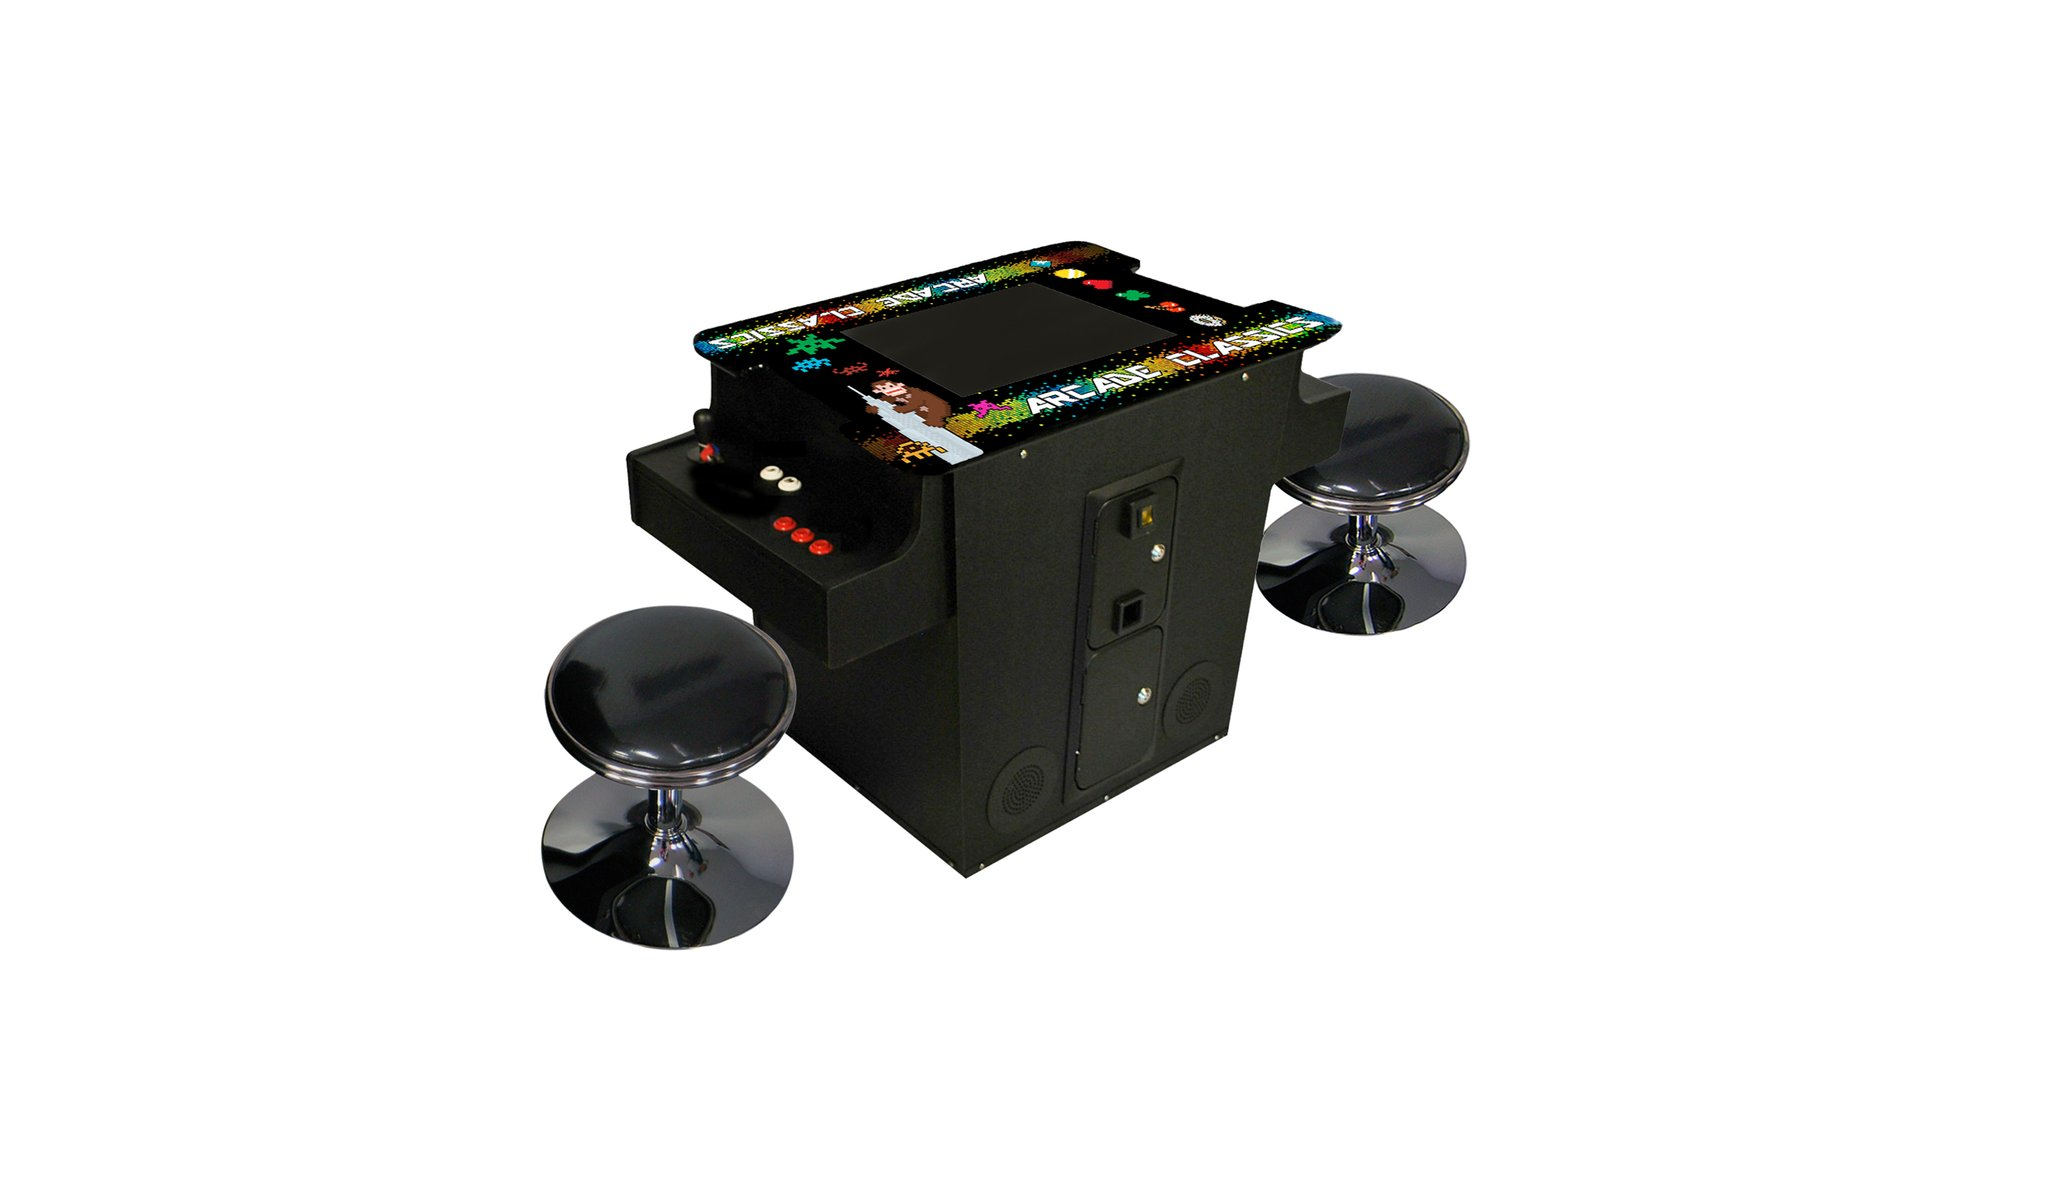 Classic Table Arcade Games Full Sized Cocktail Table Arcade Game Feat 60 Classic Games